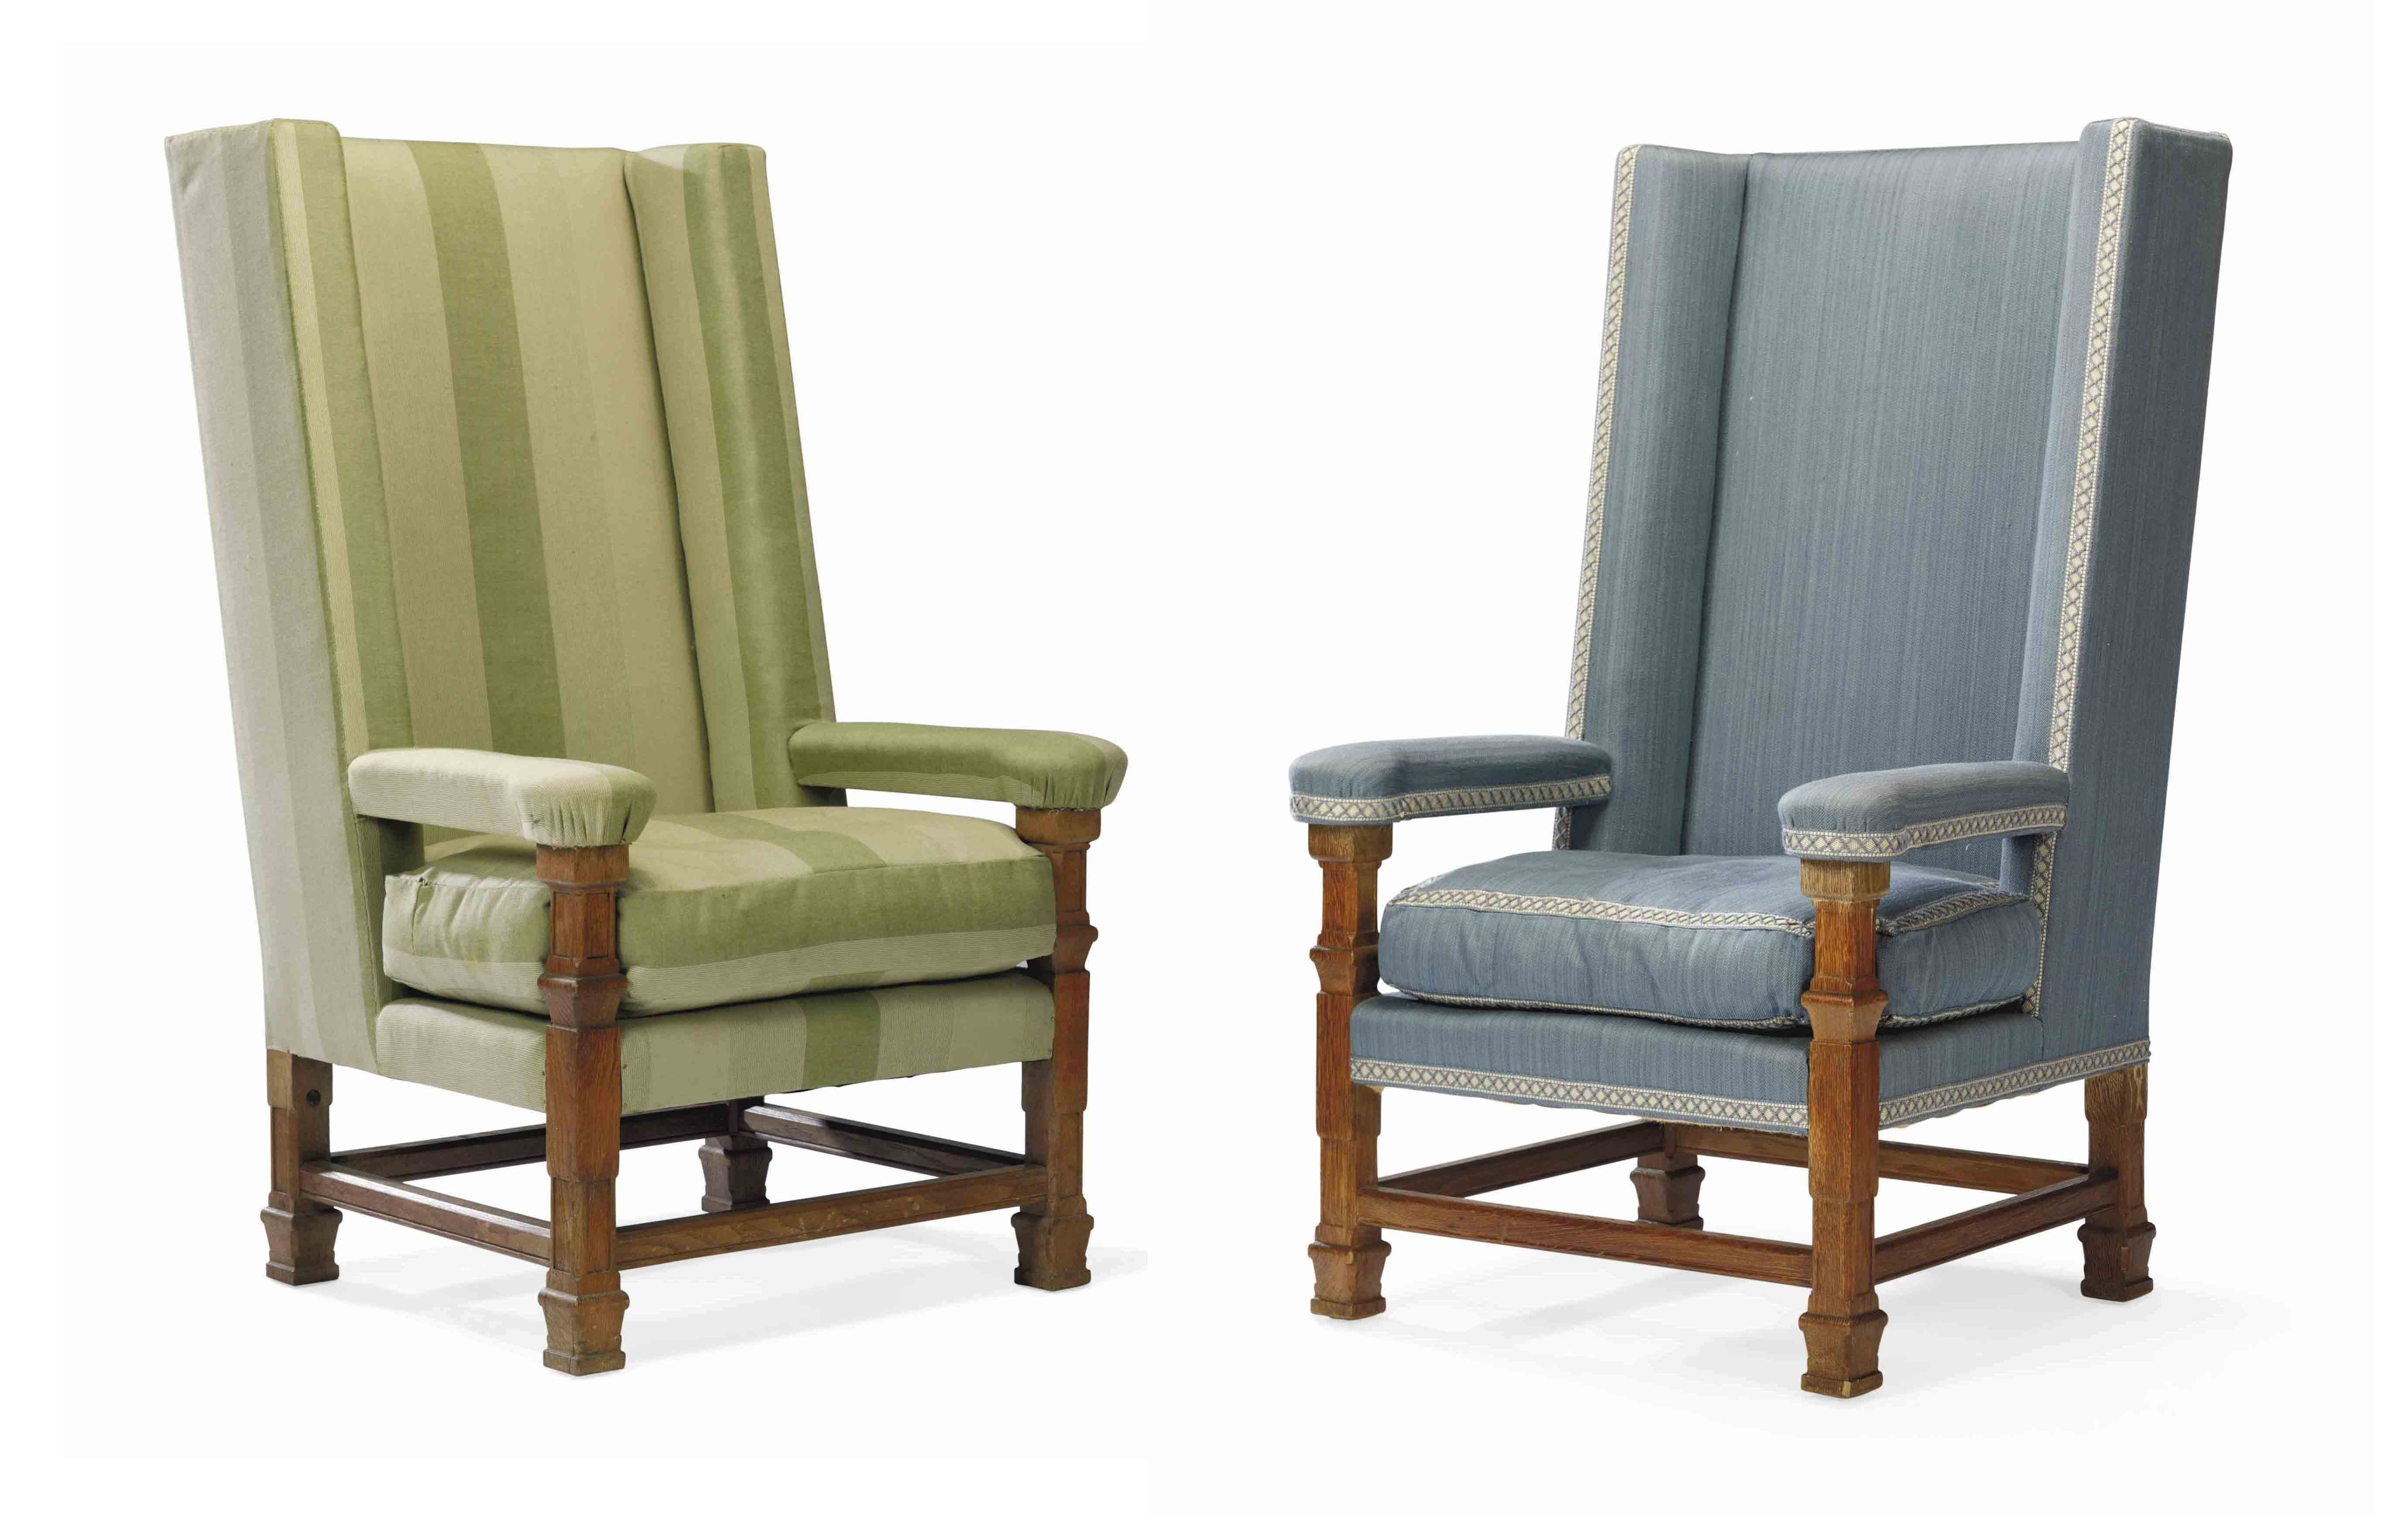 A PAIR OF ENGLISH OAK HIGH-BACKED ARMCHAIRS